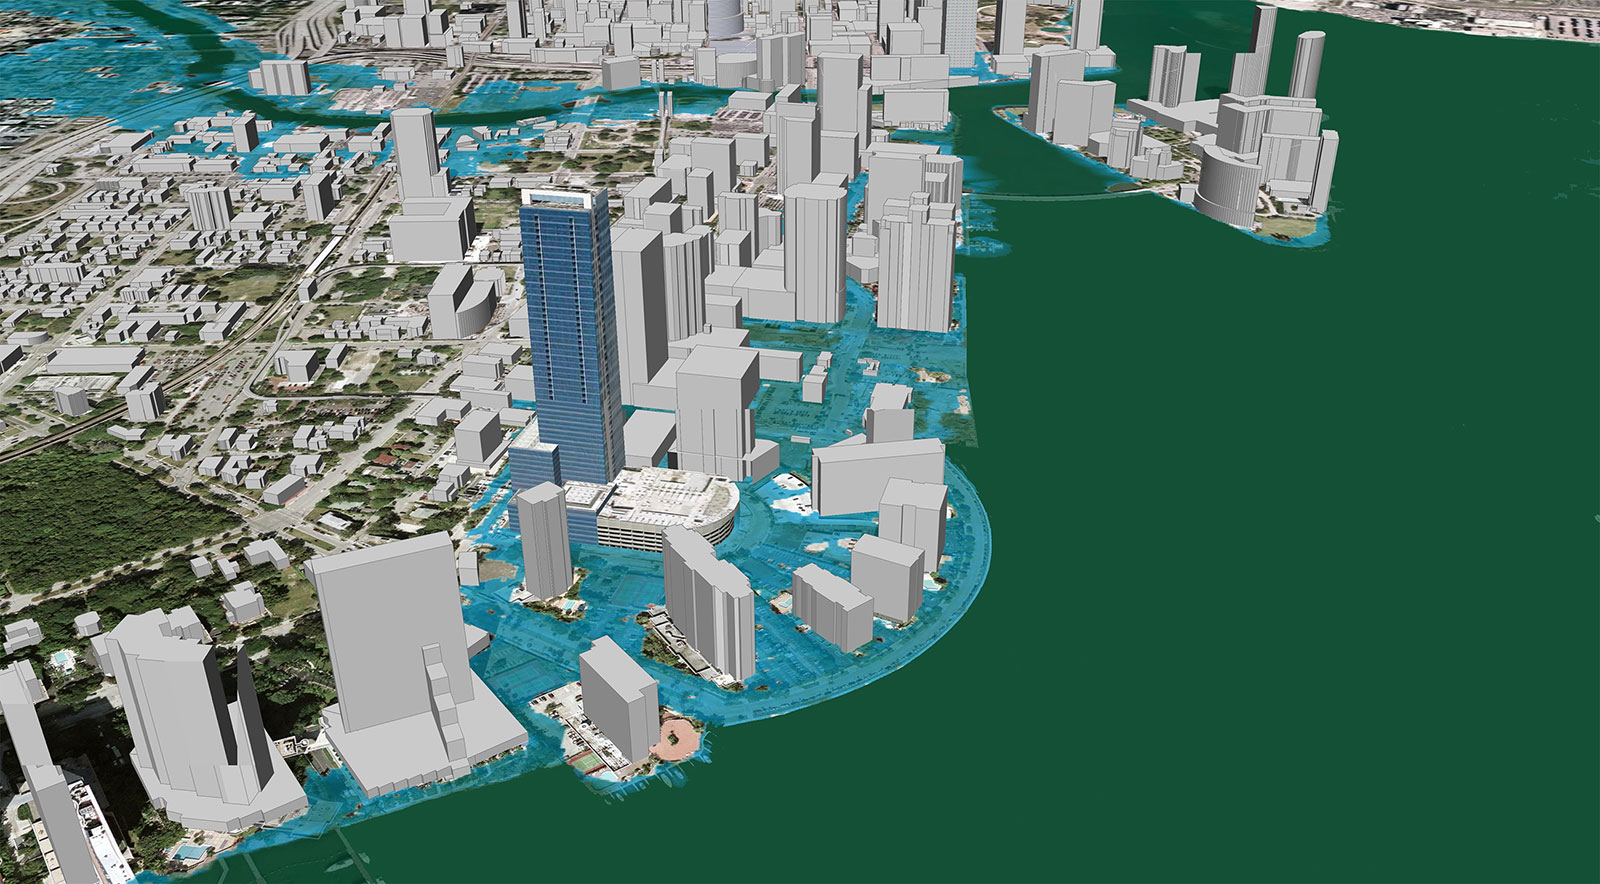 Image depicting inundation scenario in 2030 when sea level has risen one meter. Image Credit: ©2007 2030, Inc / Architecture 2030 and ©2007 Google, Inc.